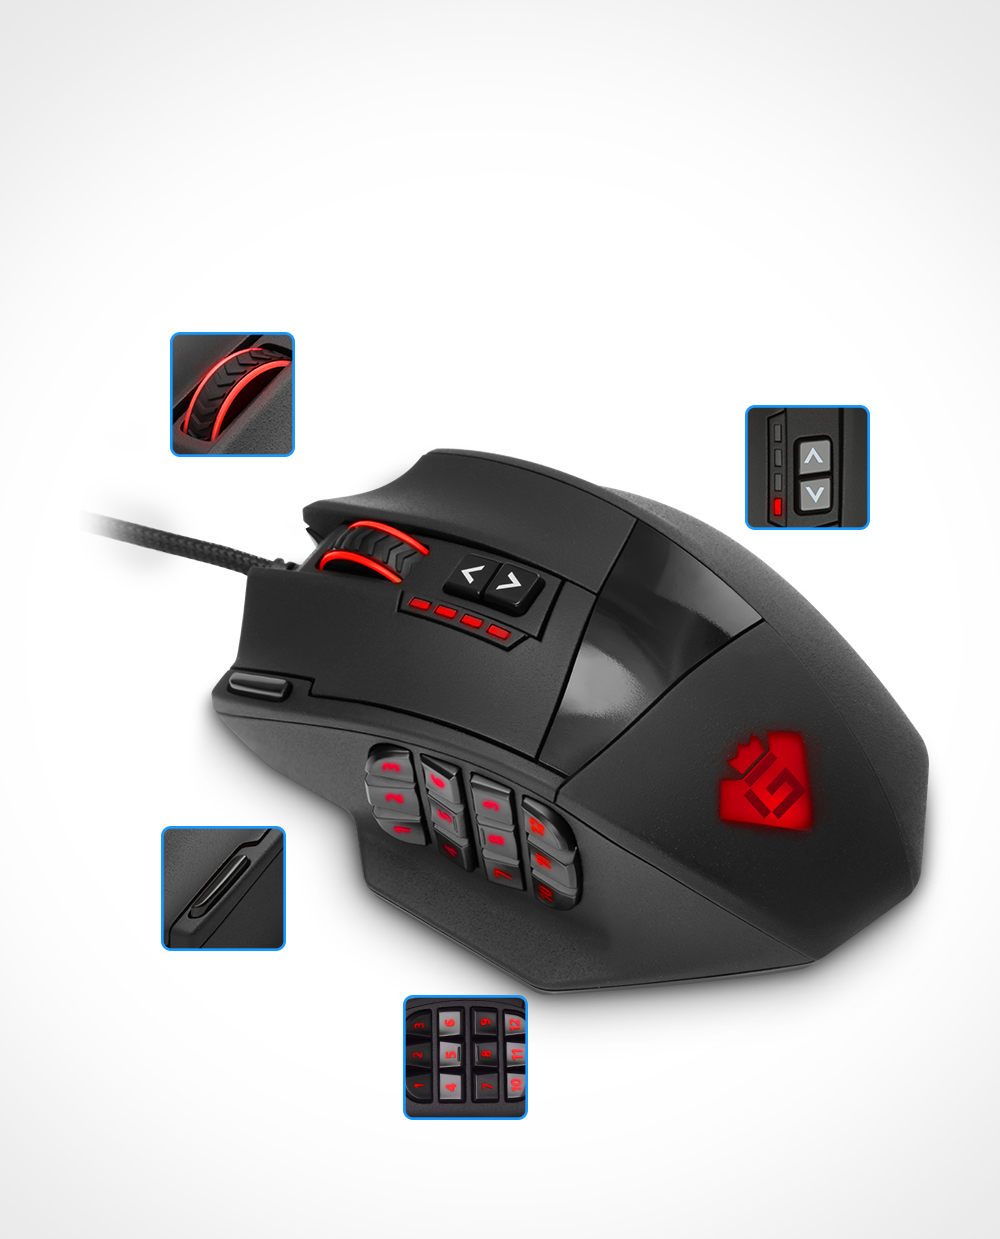 Details about Gaming Mouse 50 to 16400 DPI High Precision Laser MMO 19 PCS  Buttons